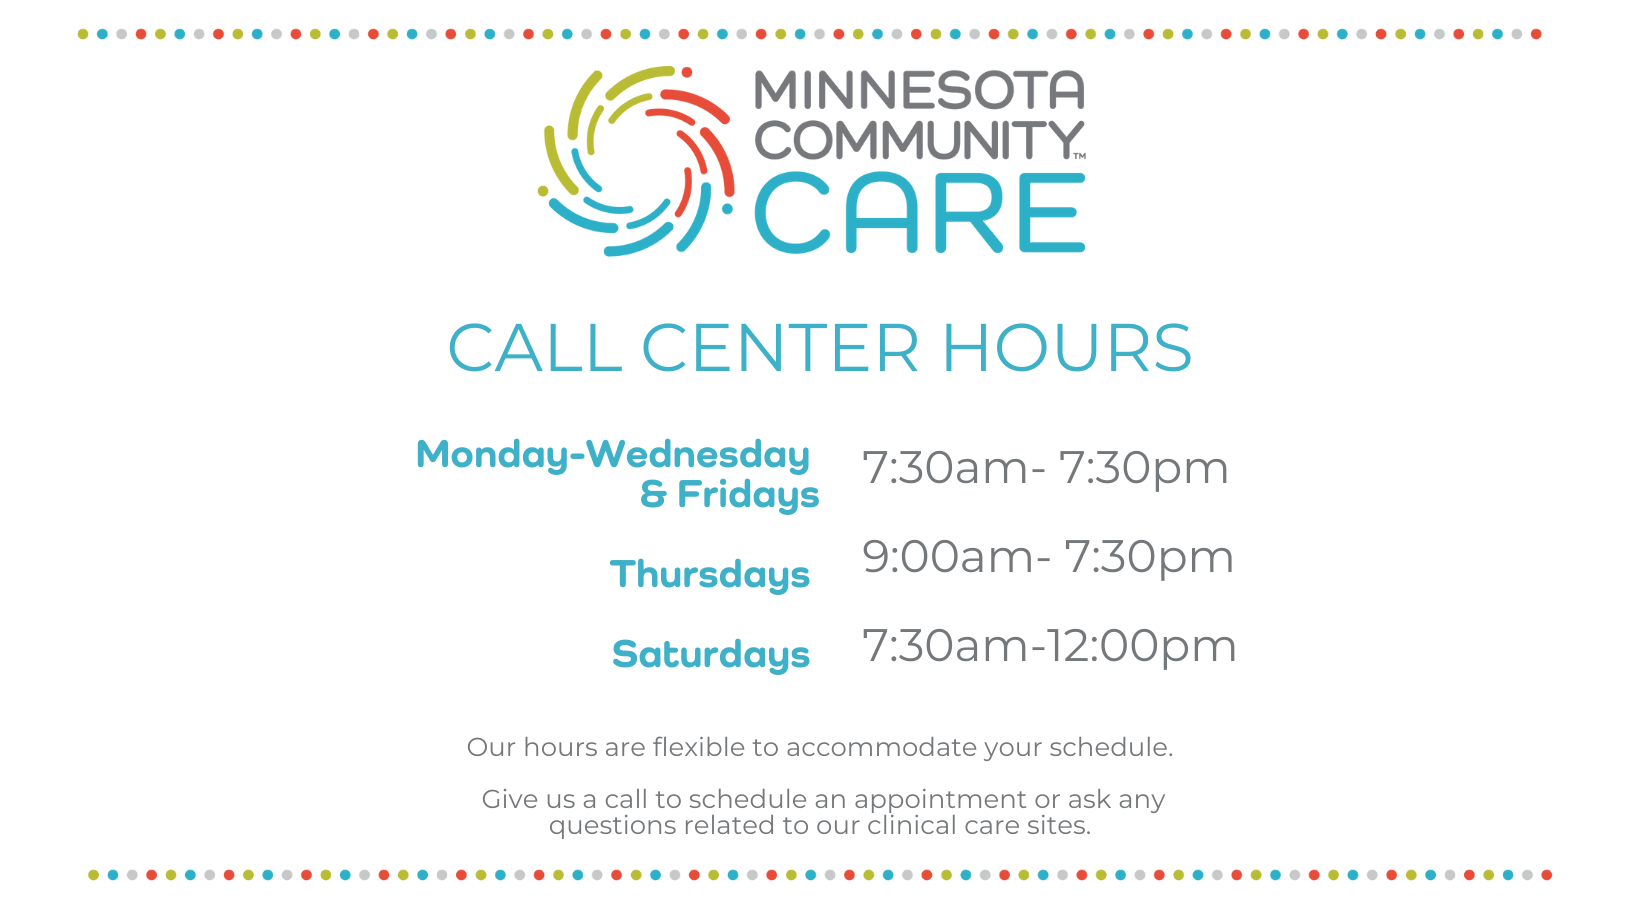 Call Center Hours Monday-Saturday